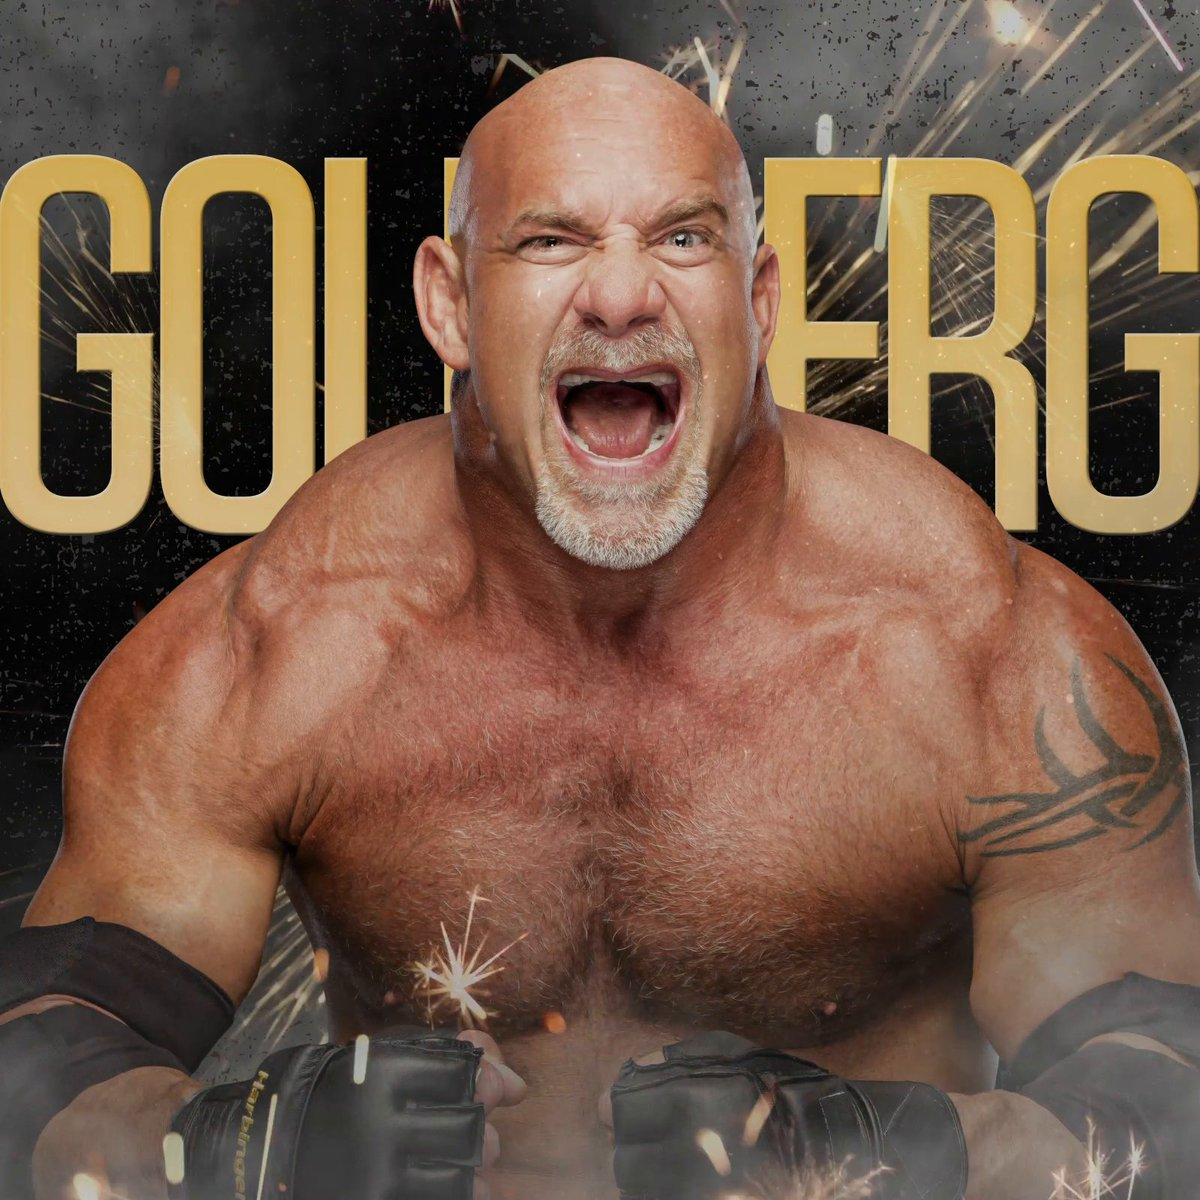 Goldberg photo